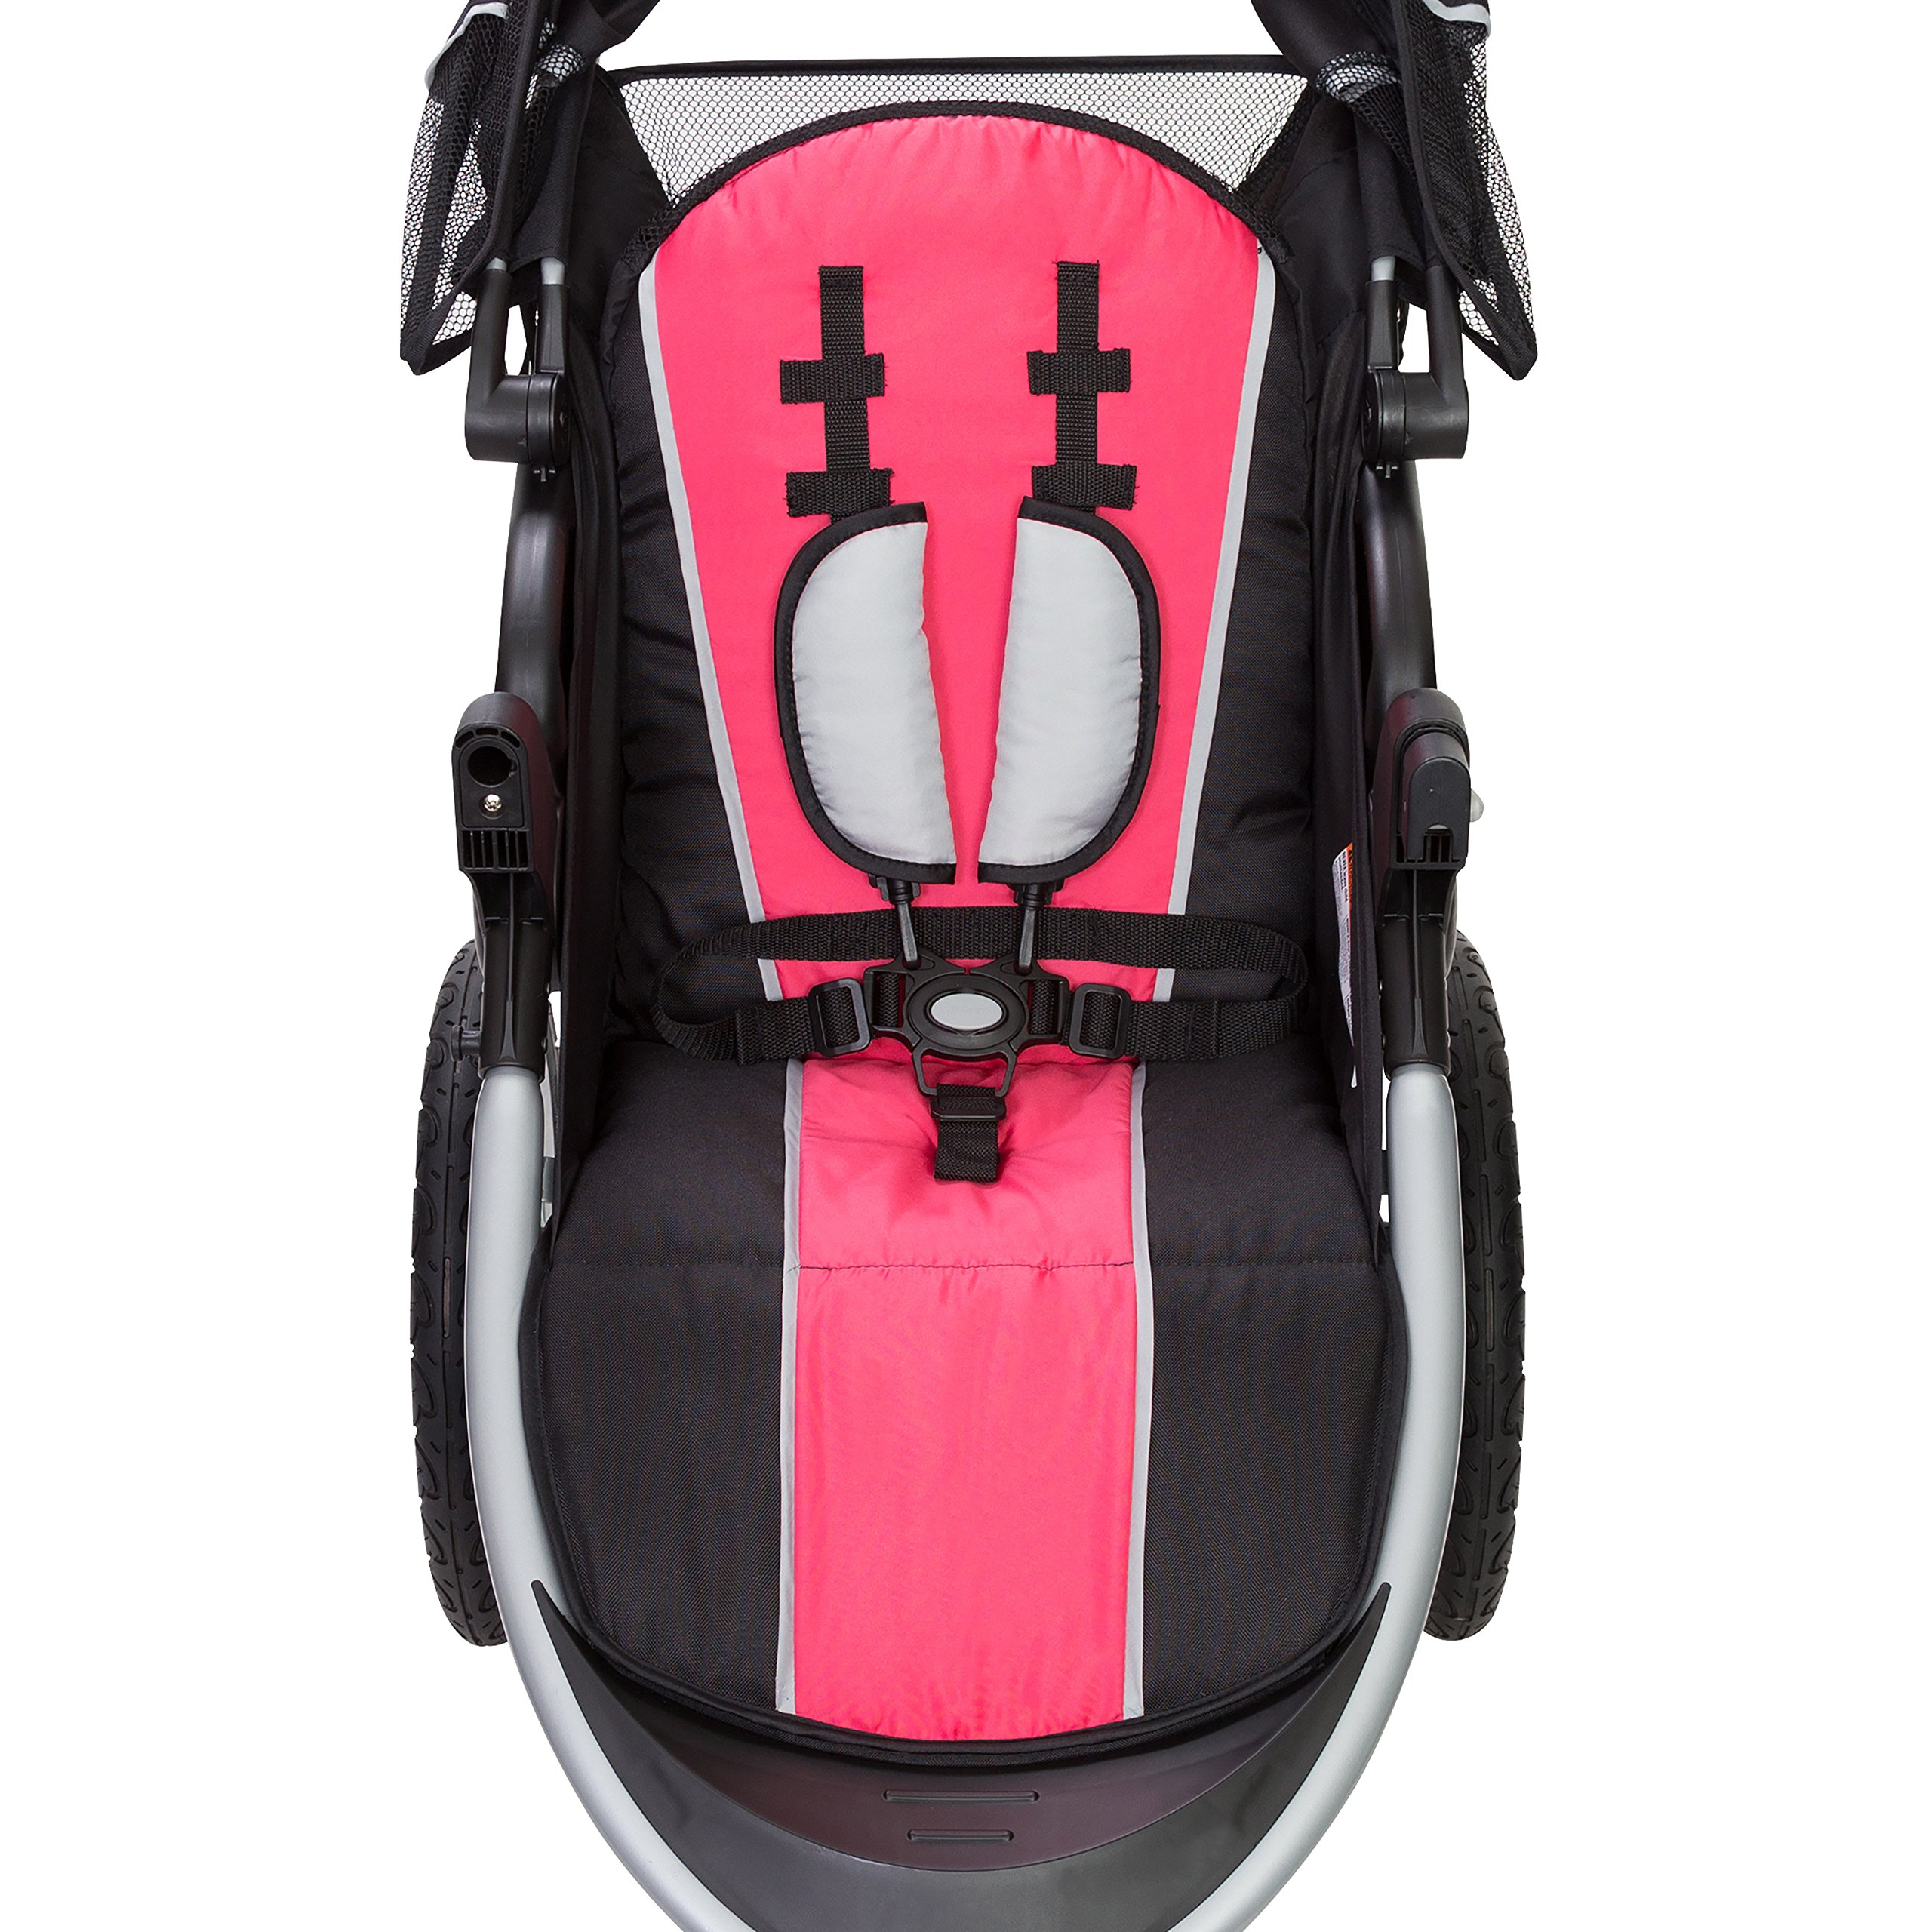 Baby Trend Pathway 35 Jogger Stroller, Optic Pink by Baby Trend (Image #3)